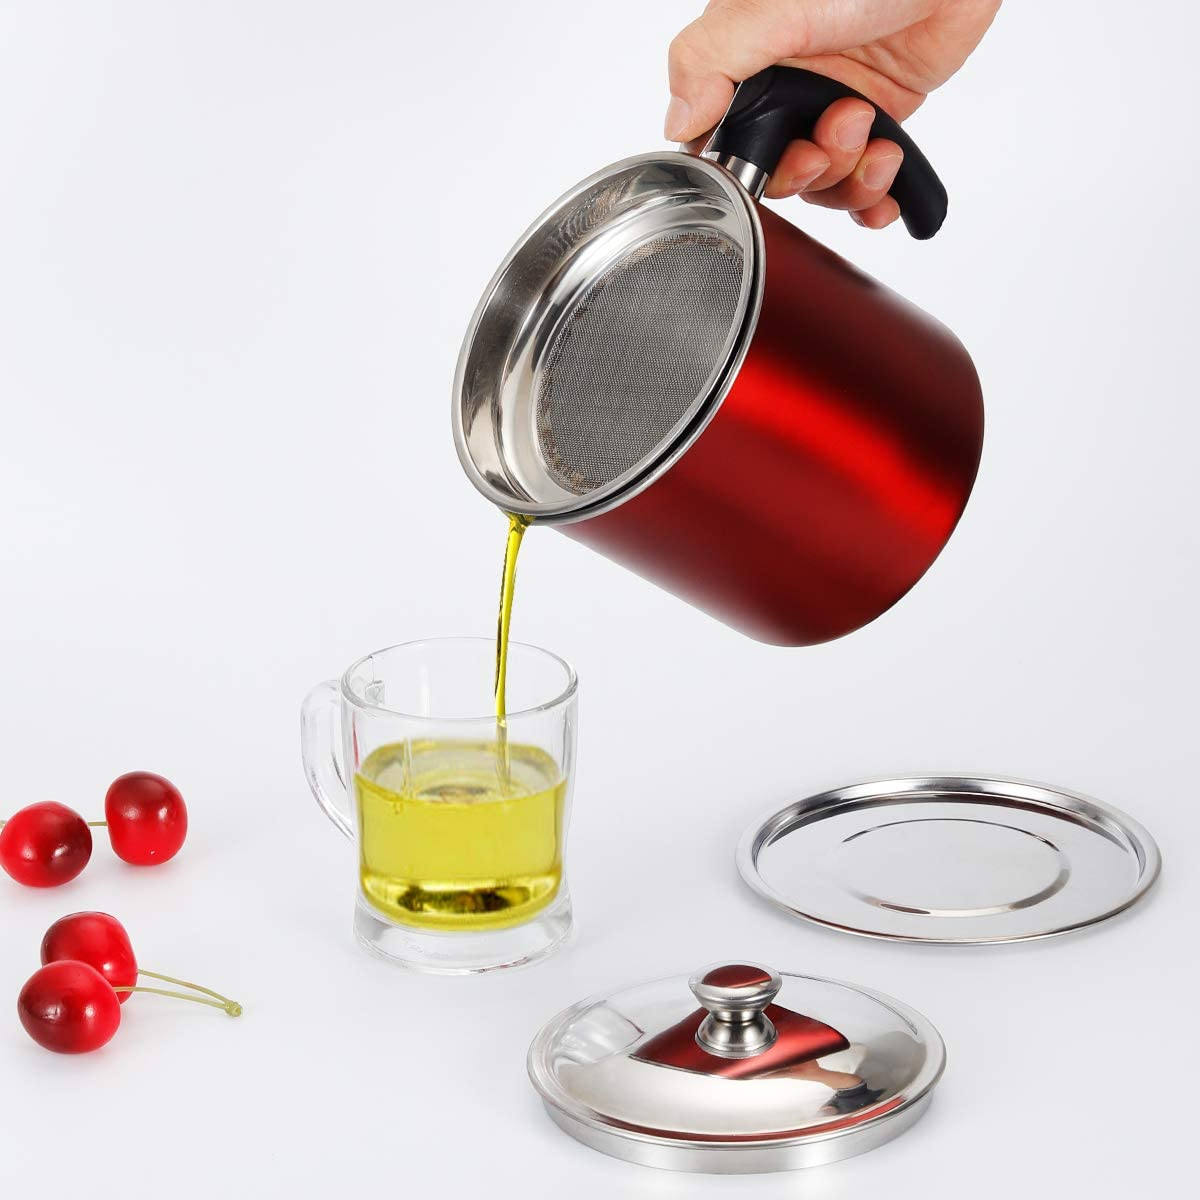 Food Grade Stainless Steel Bacon Grease Container with Strainer, Oil Pot Cooking Oil Filter Keeper Storage Can for Bacon, Kitchen Cooking or Frying Oil (RED)